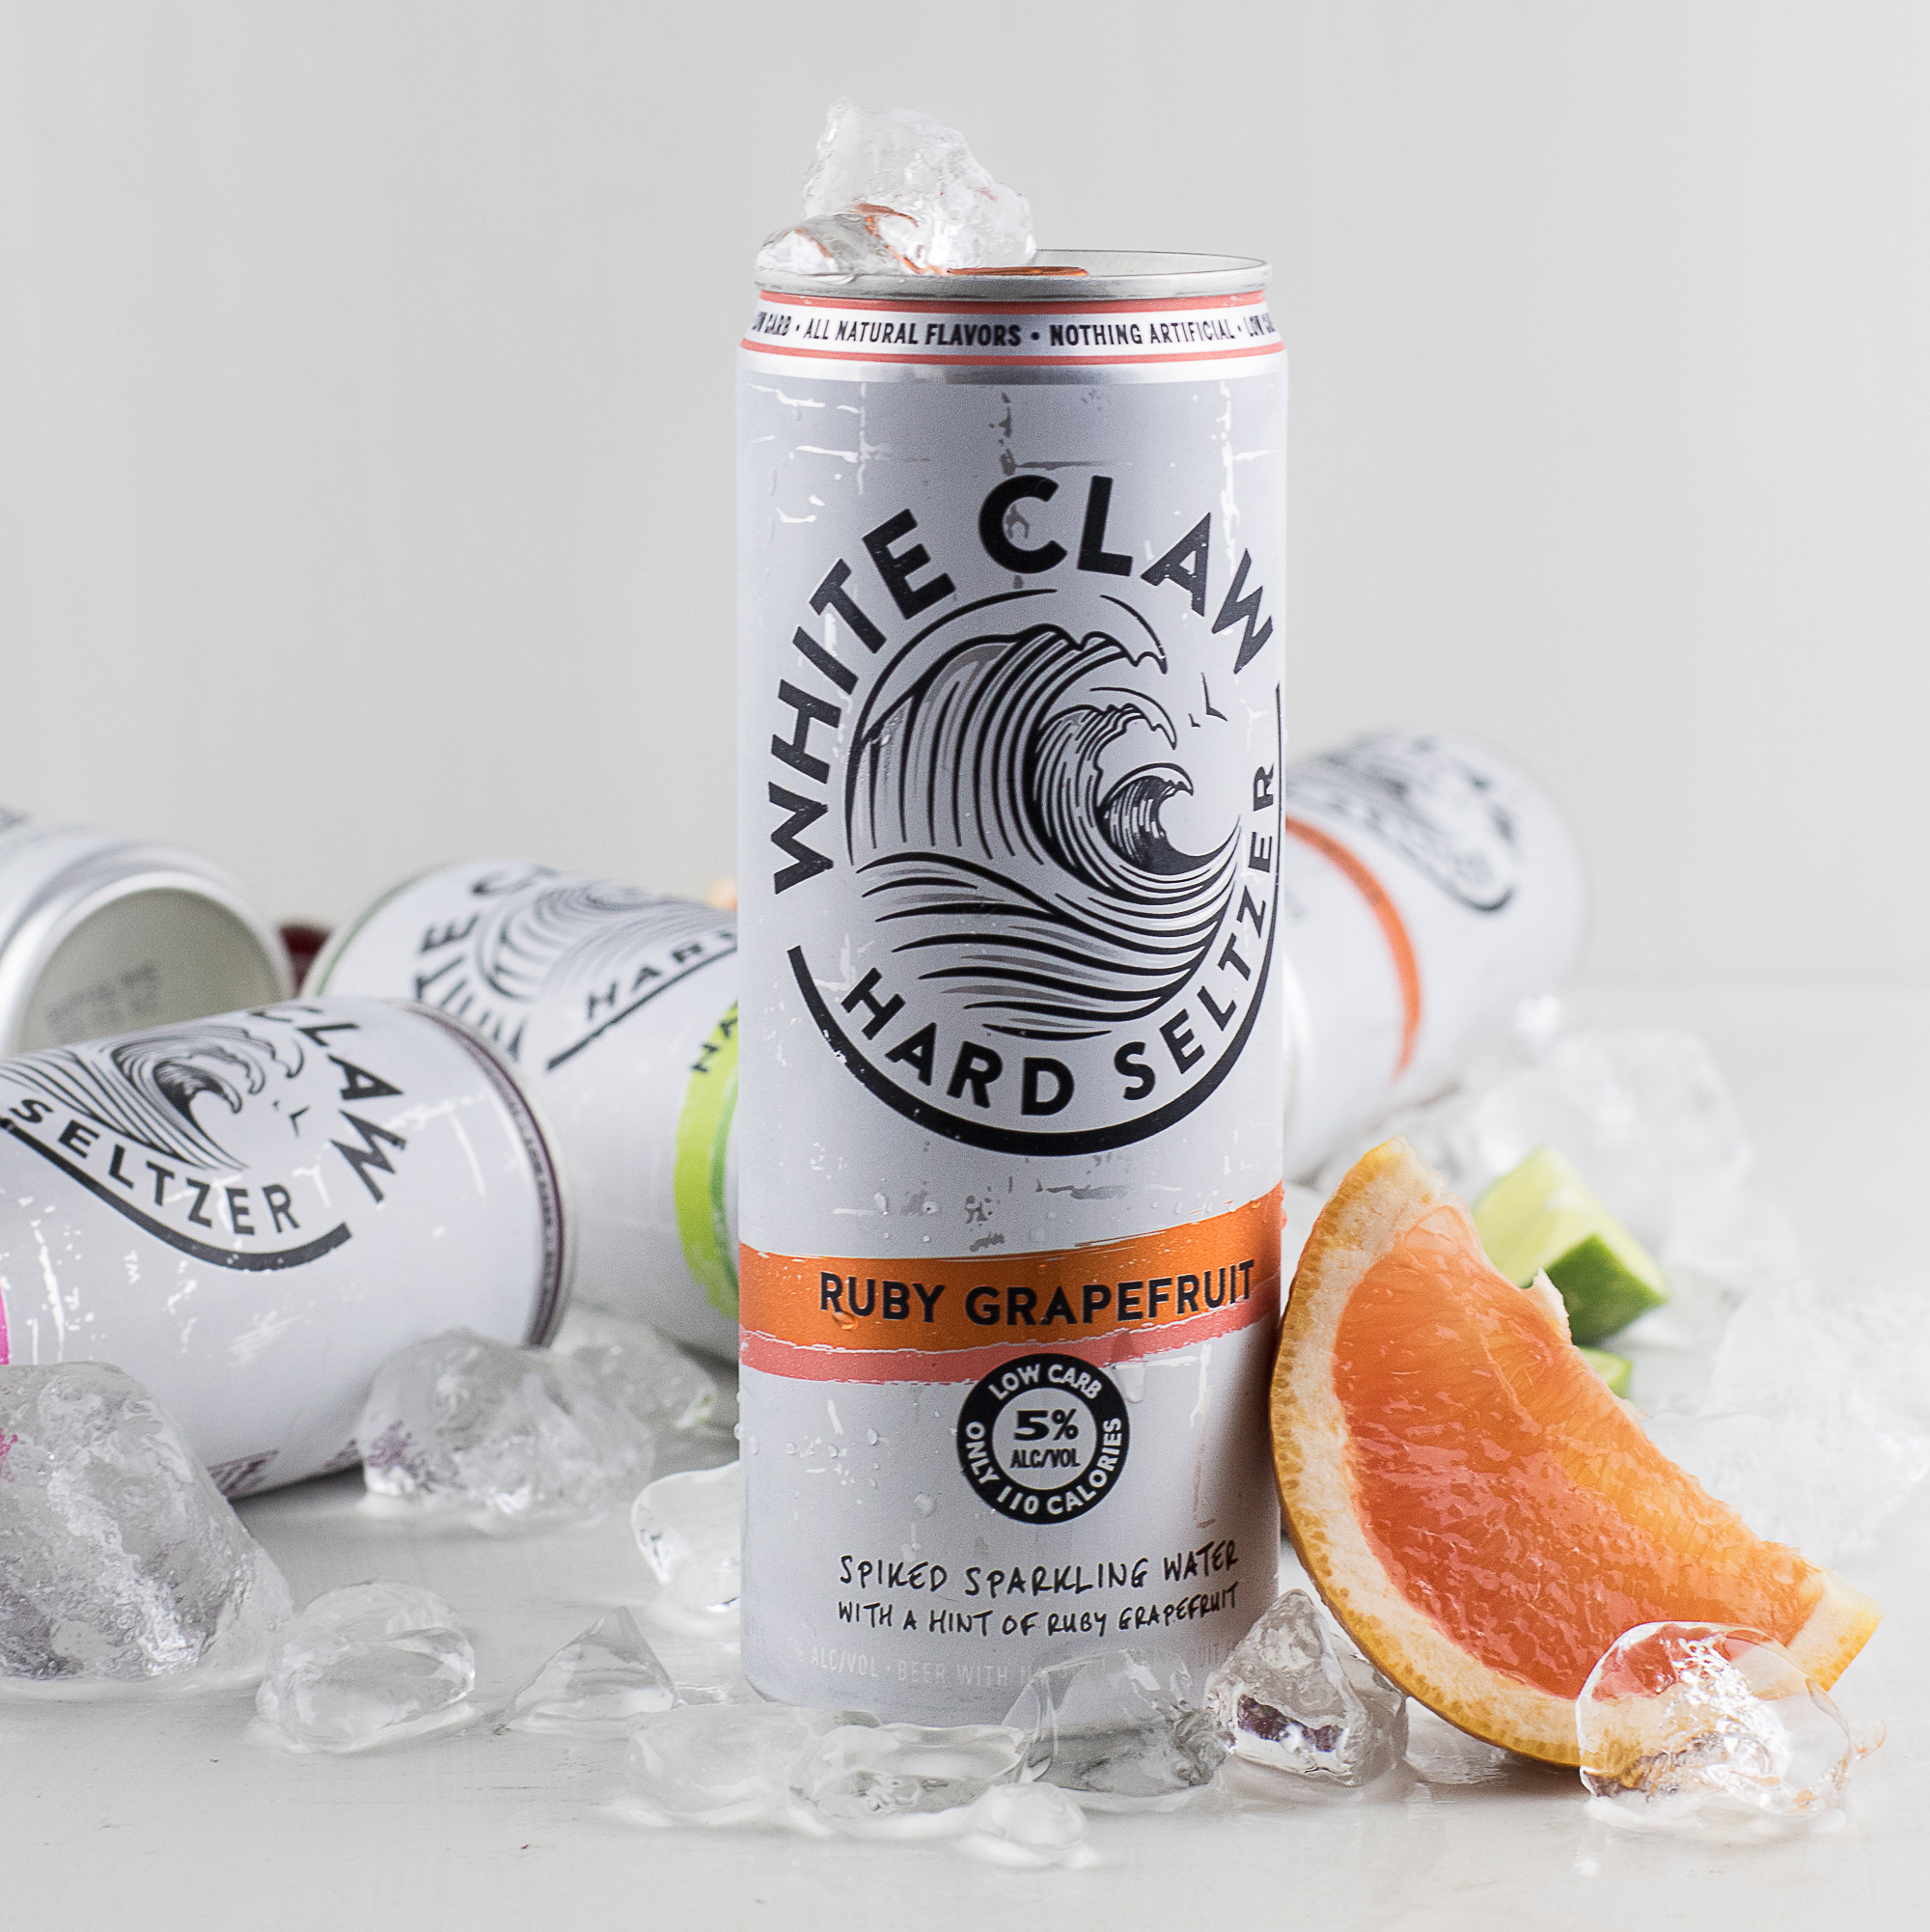 Summer Sips: White Claw Hard Seltzer - The Food Gays